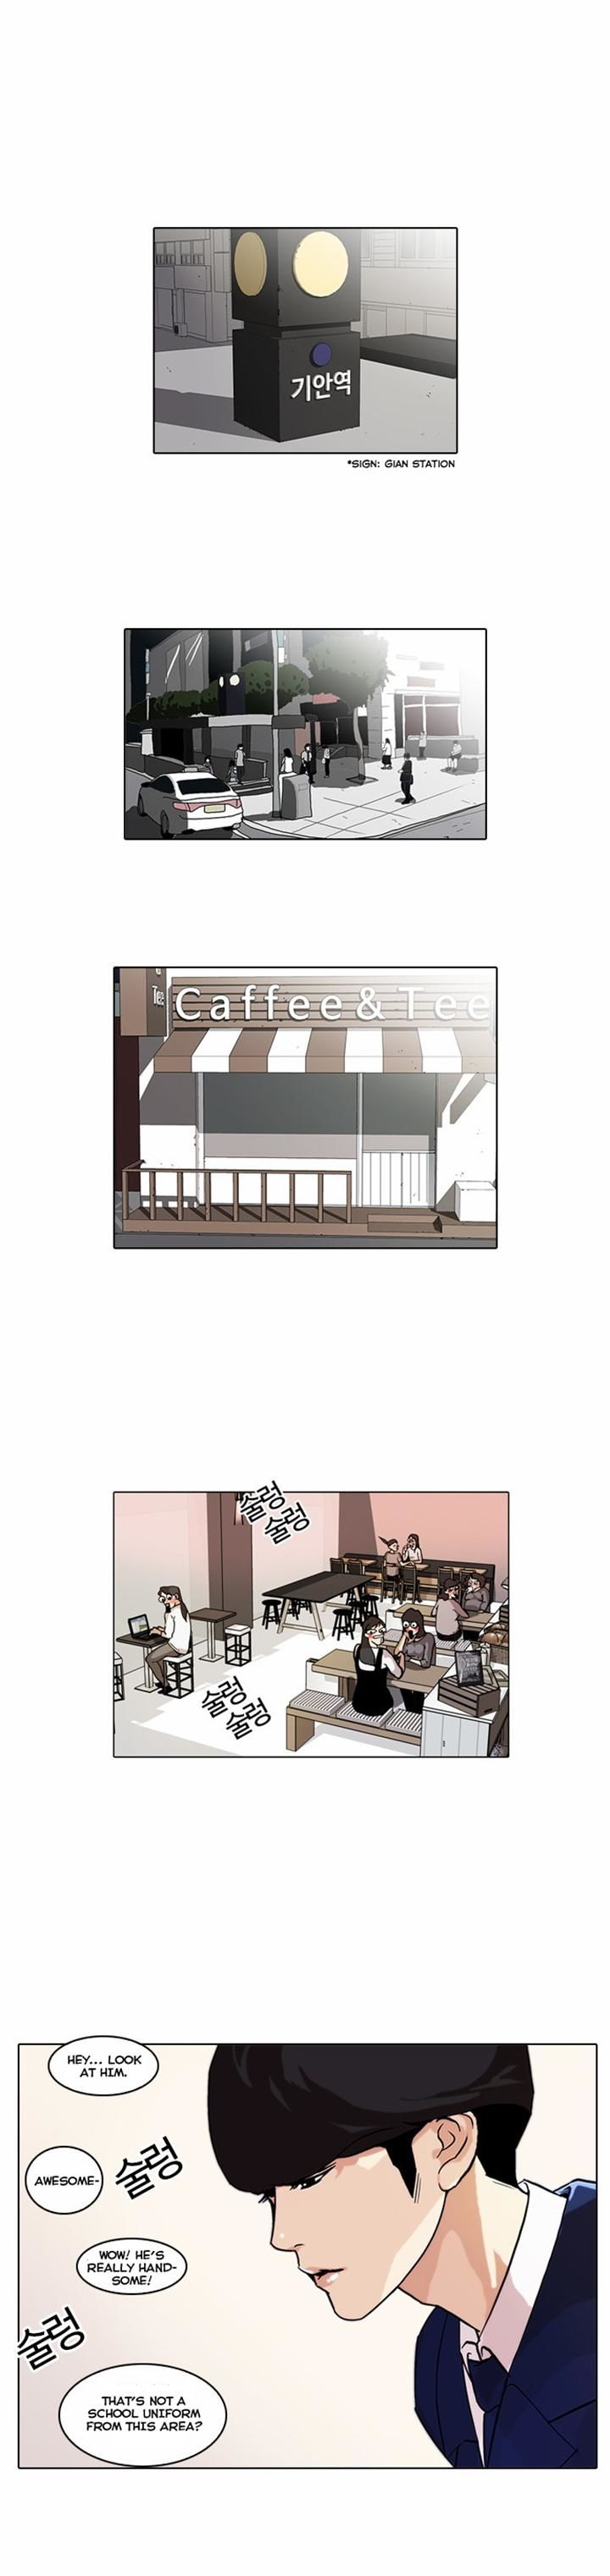 Lookism 36 Page 1